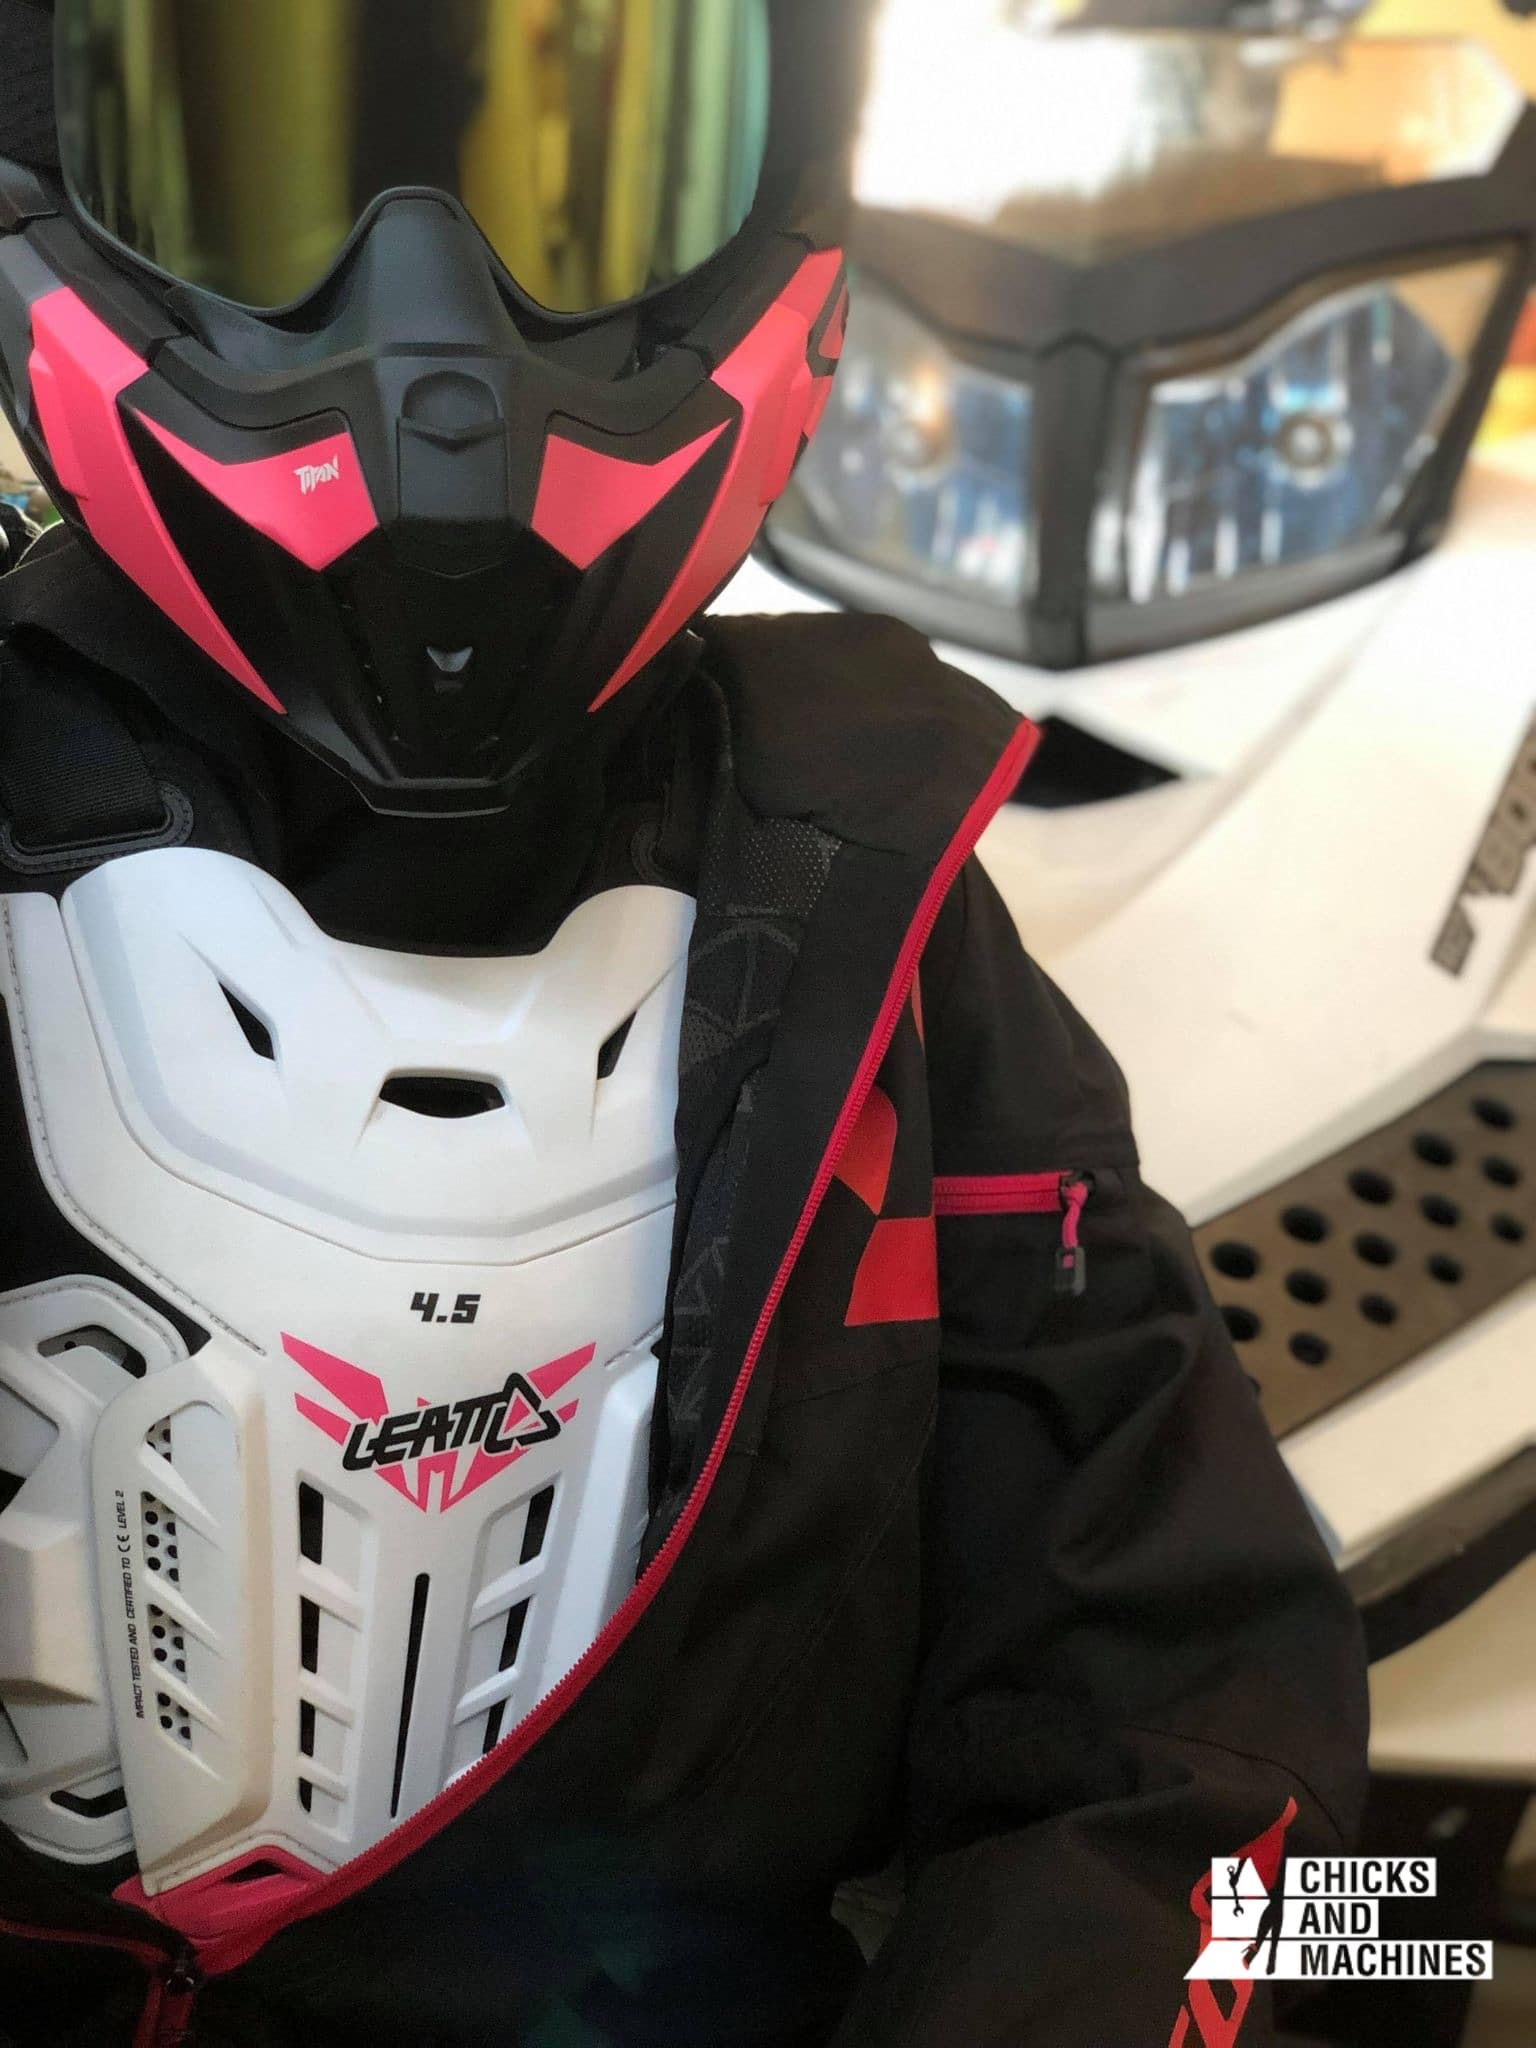 The chest protector tested during the winter